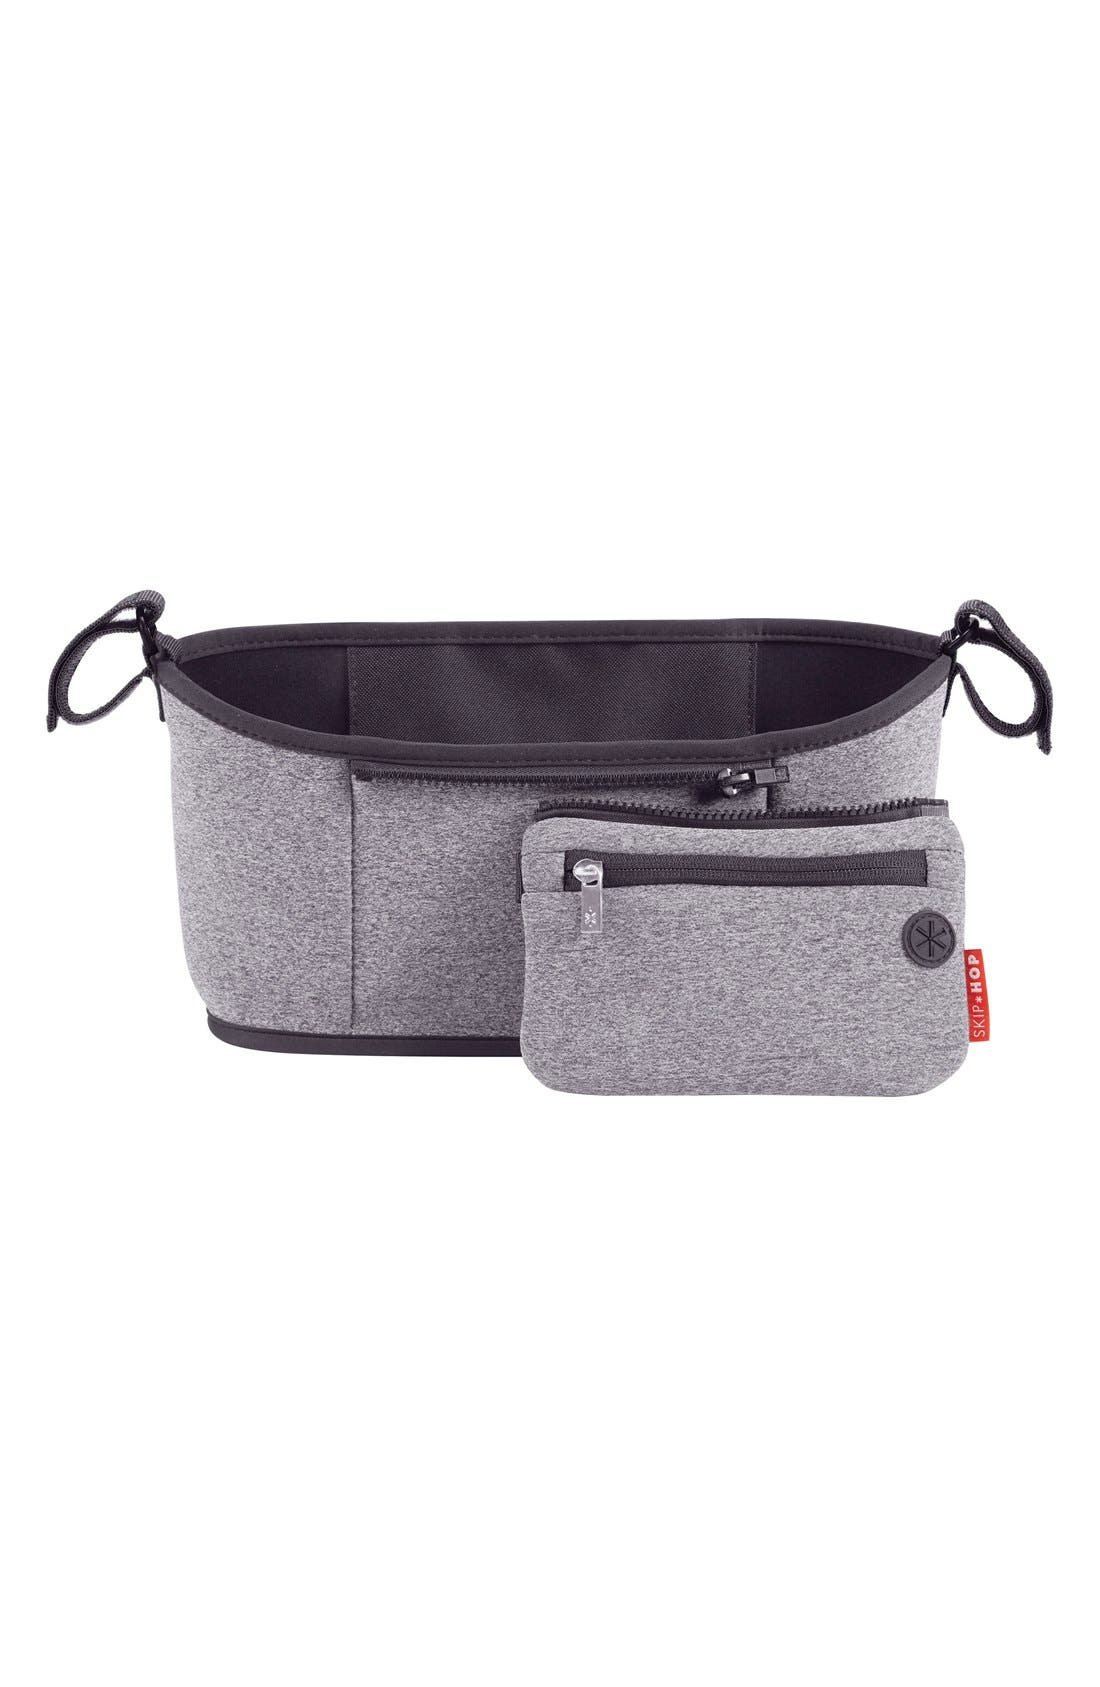 'Grab & Go' Stroller Organizer,                             Main thumbnail 1, color,                             050